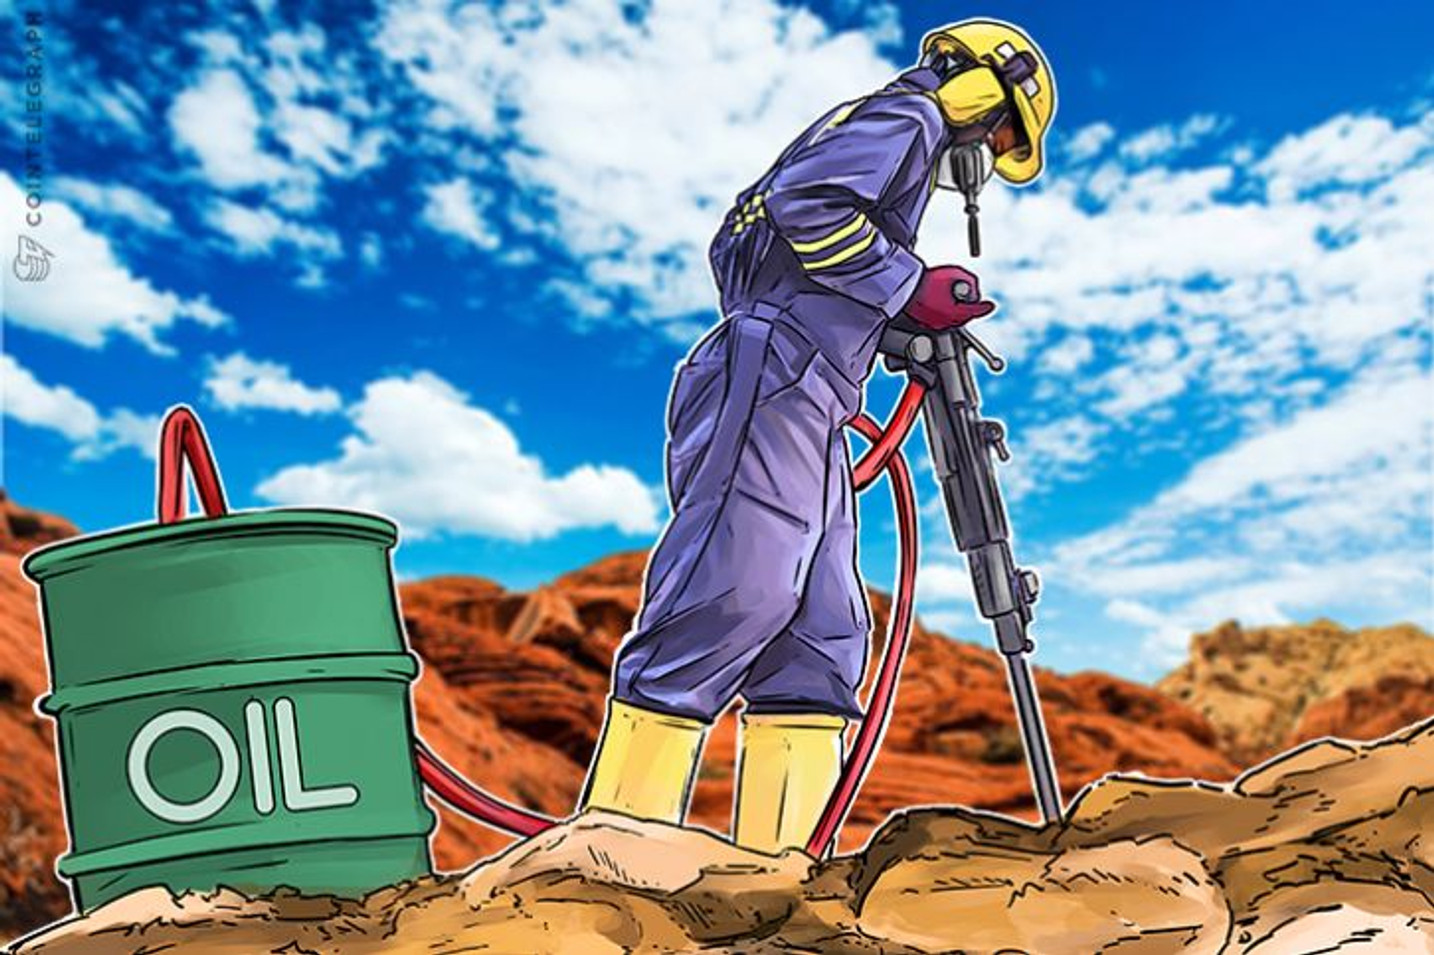 S&P Global Platts Launches Blockchain Network To Track Oil Data In UAE